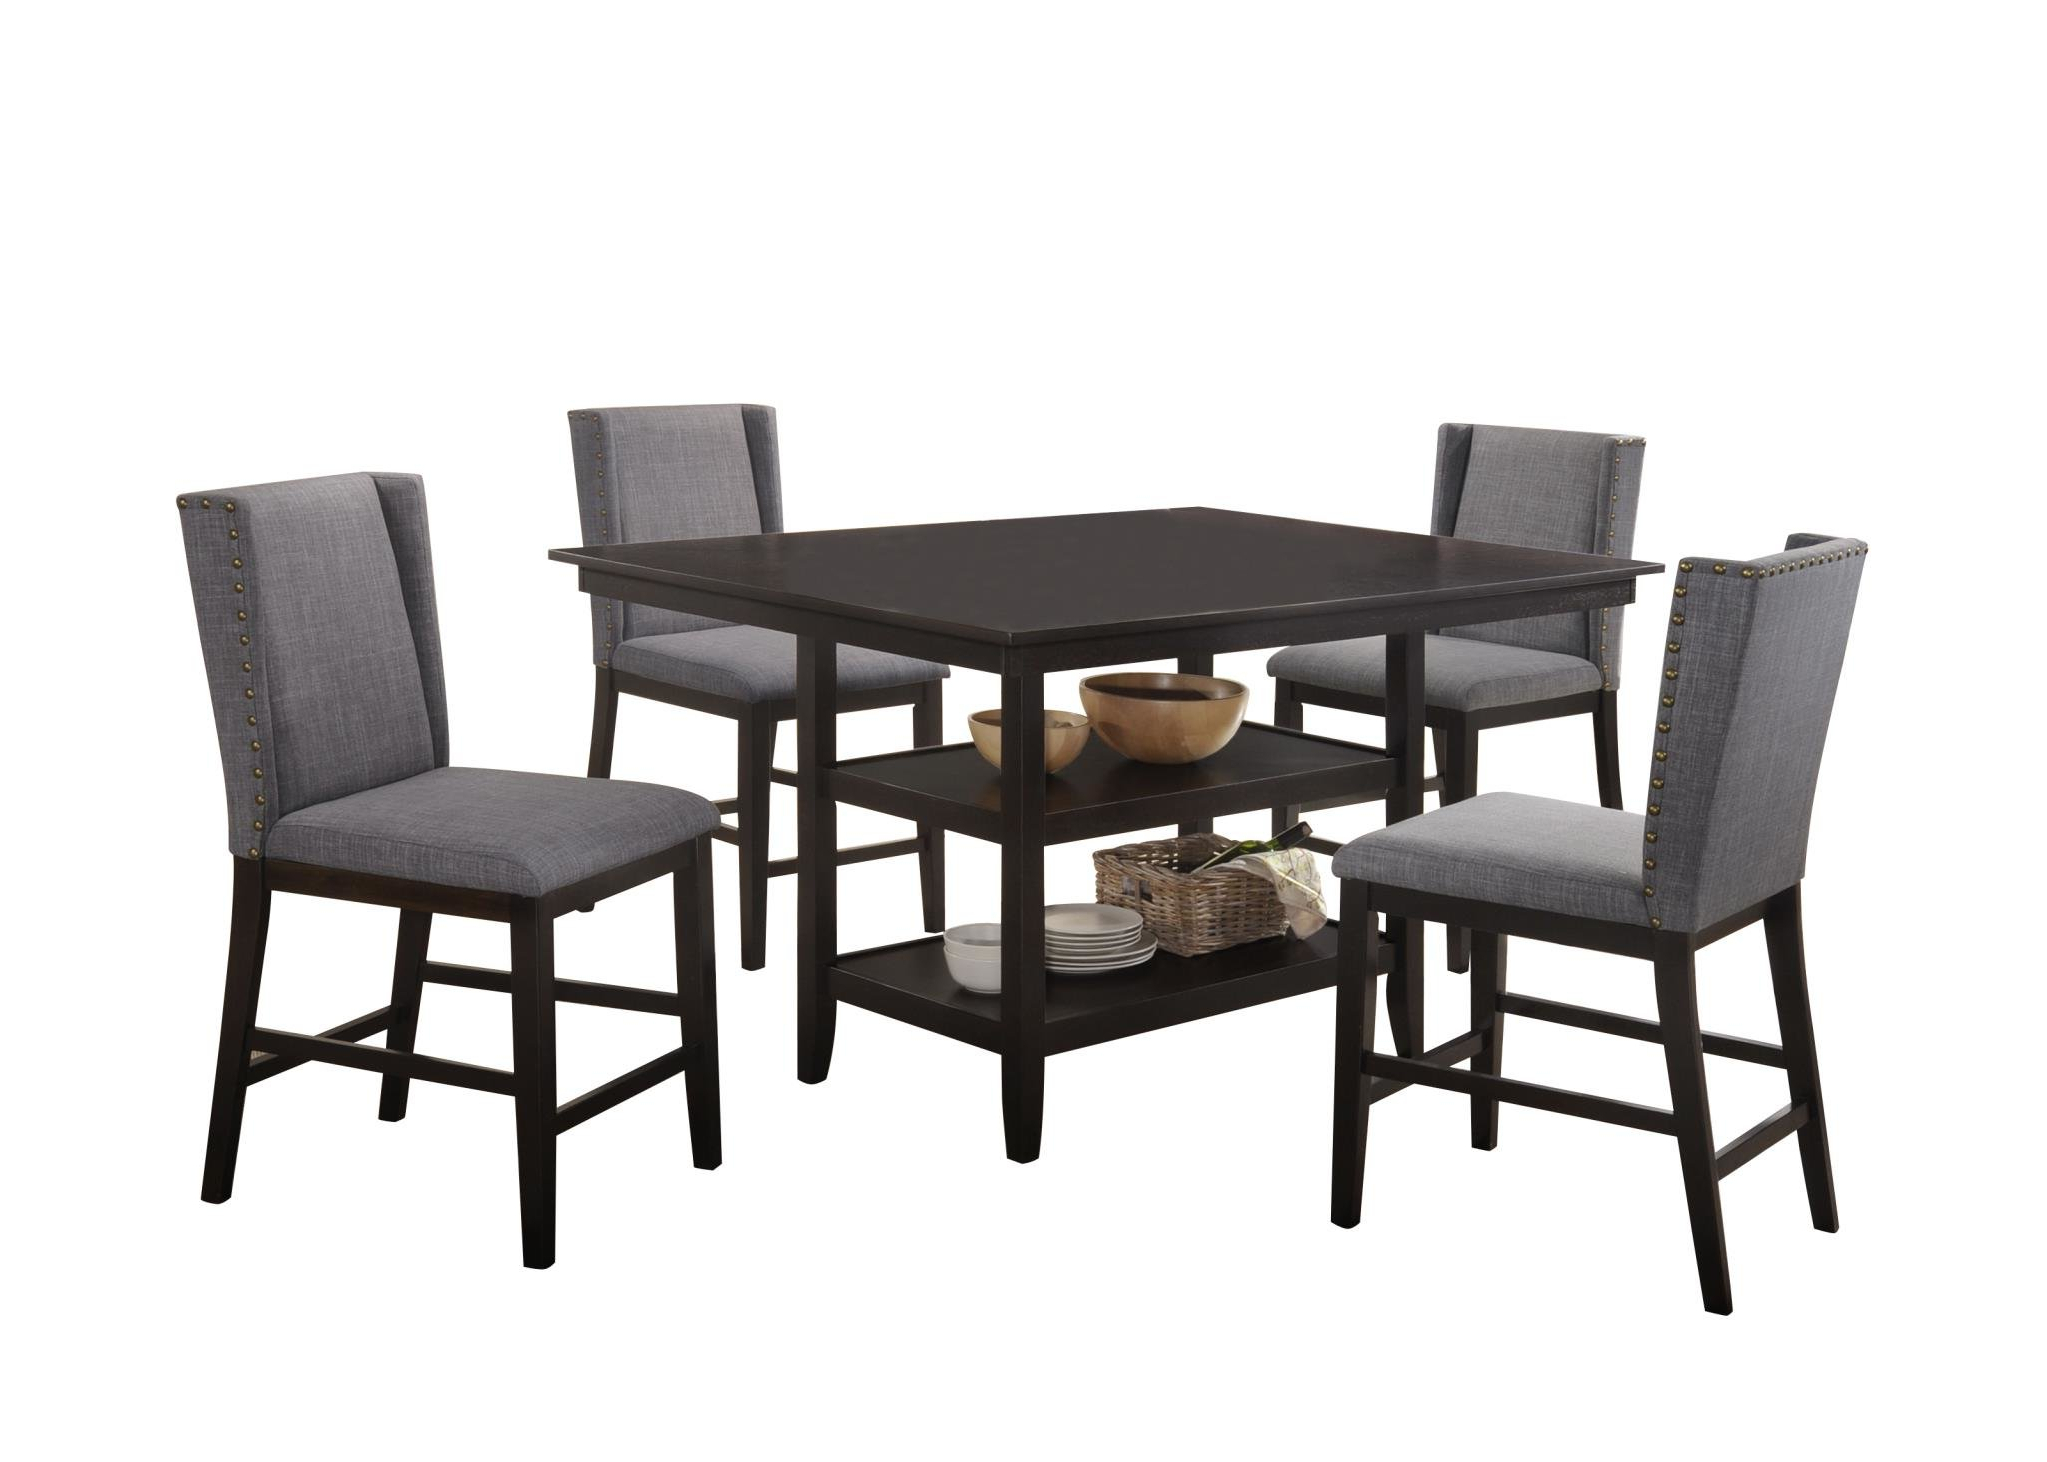 Wallach 5 Piece Pub Table Set With Most Recent Telauges 5 Piece Dining Sets (View 20 of 20)